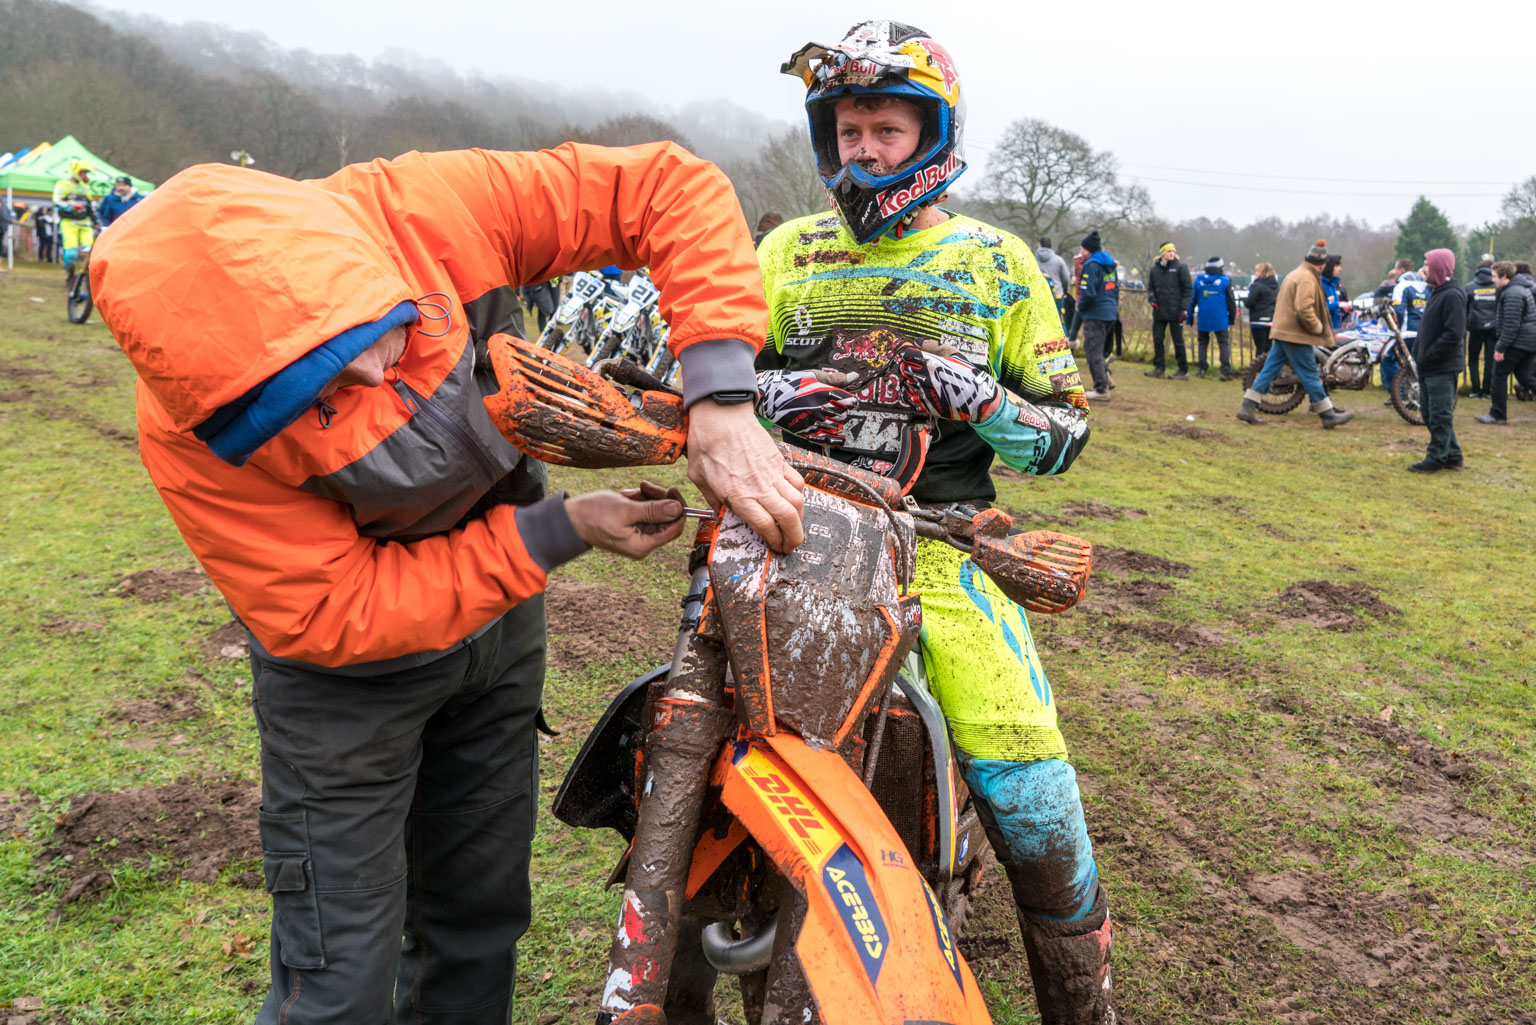 Watson gets his headlight cleaned by dad Rob Meek at Hawkstone last year